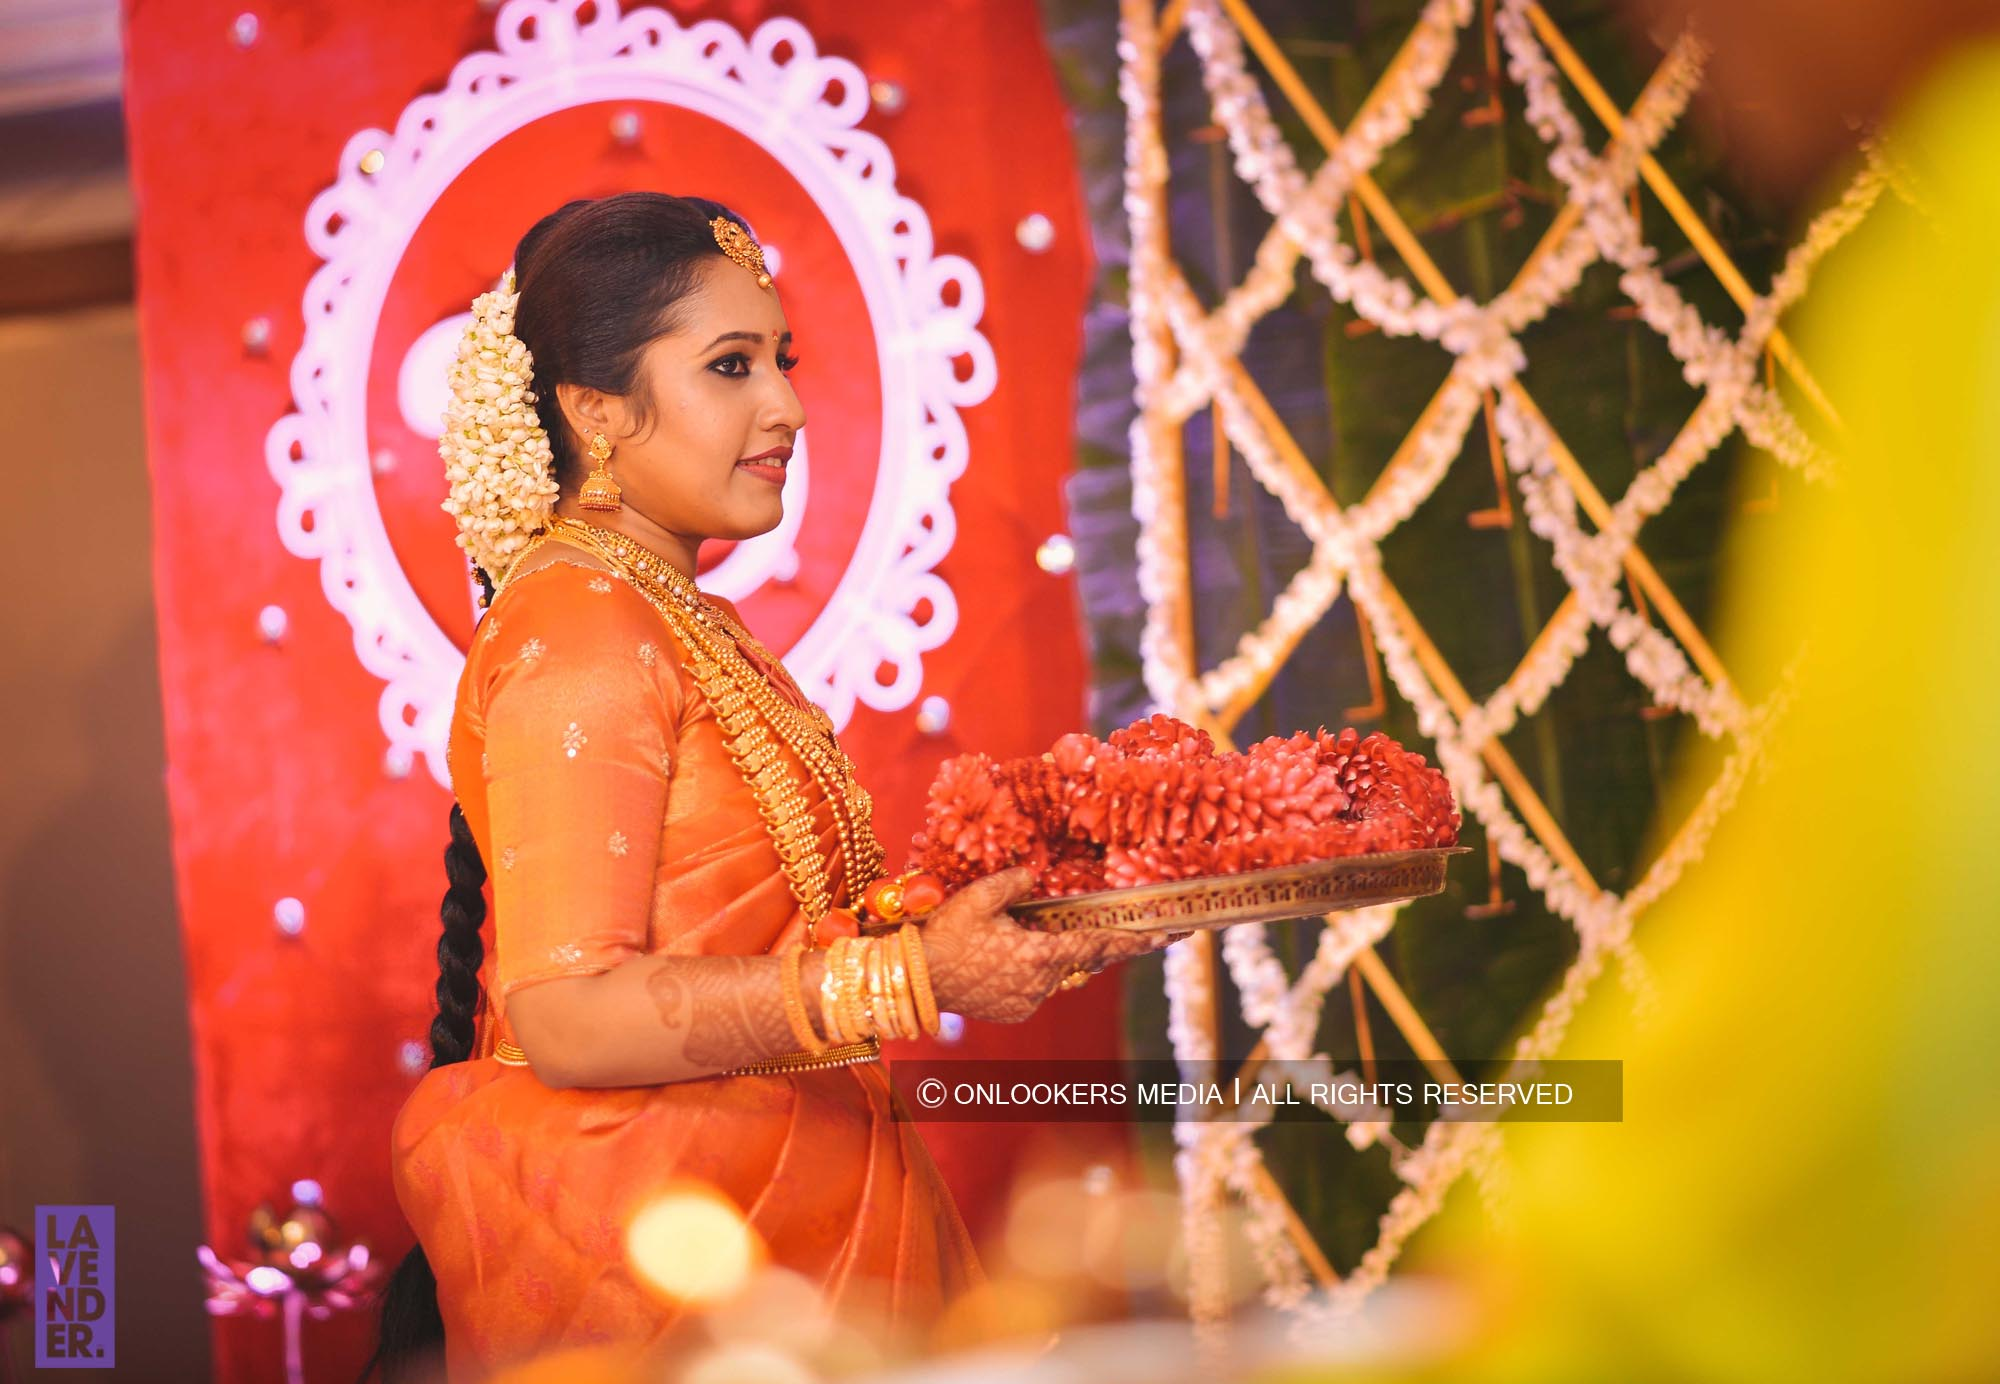 http://onlookersmedia.in/wp-content/uploads/2018/05/sreejith-vijay-wedding-stills-images-38.jpg